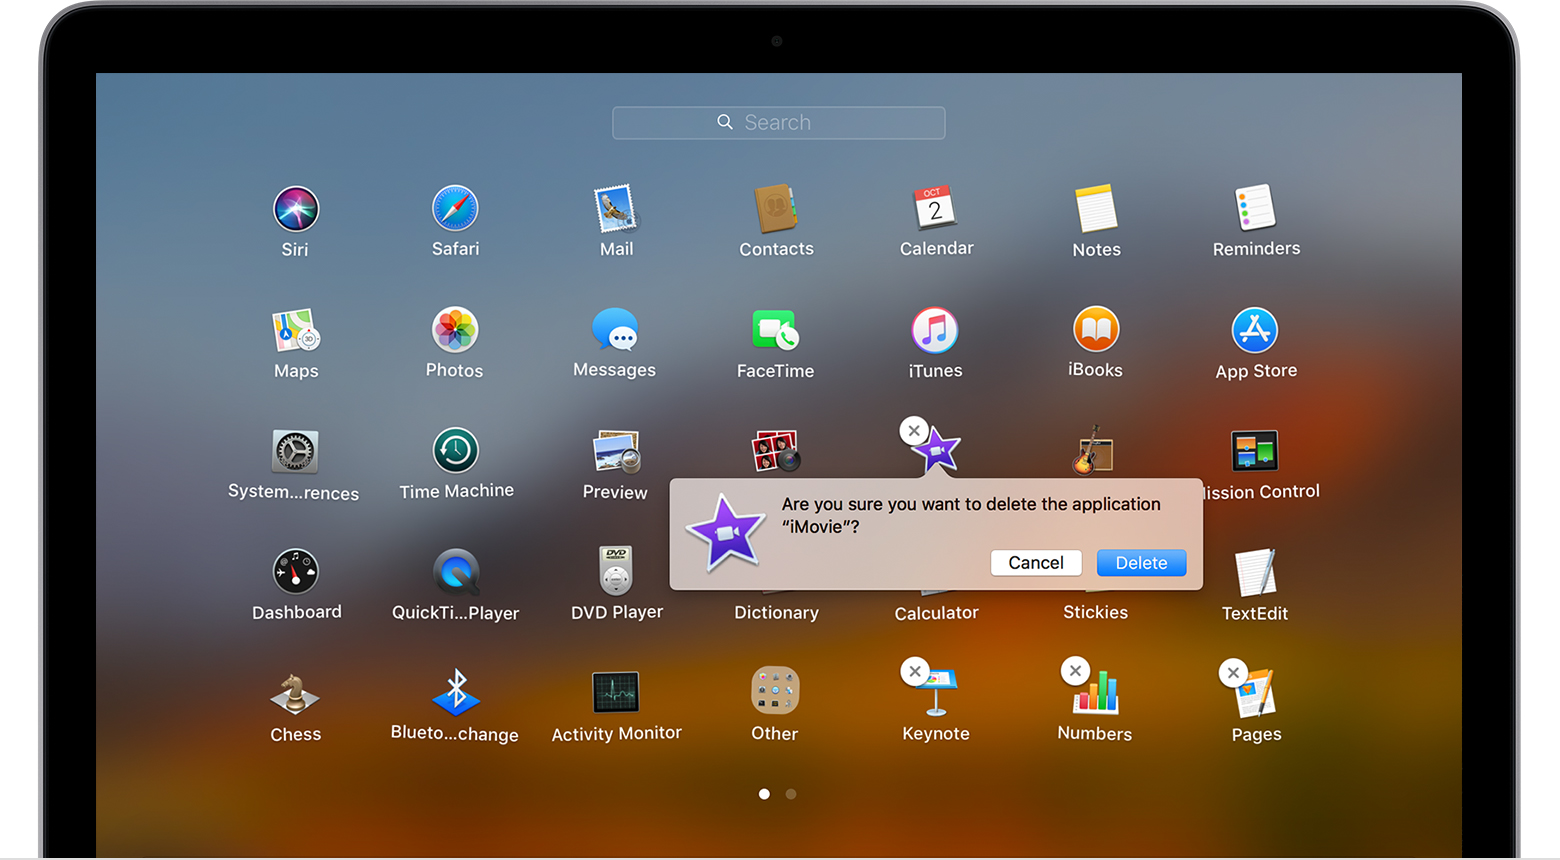 Delete app message in Launchpad